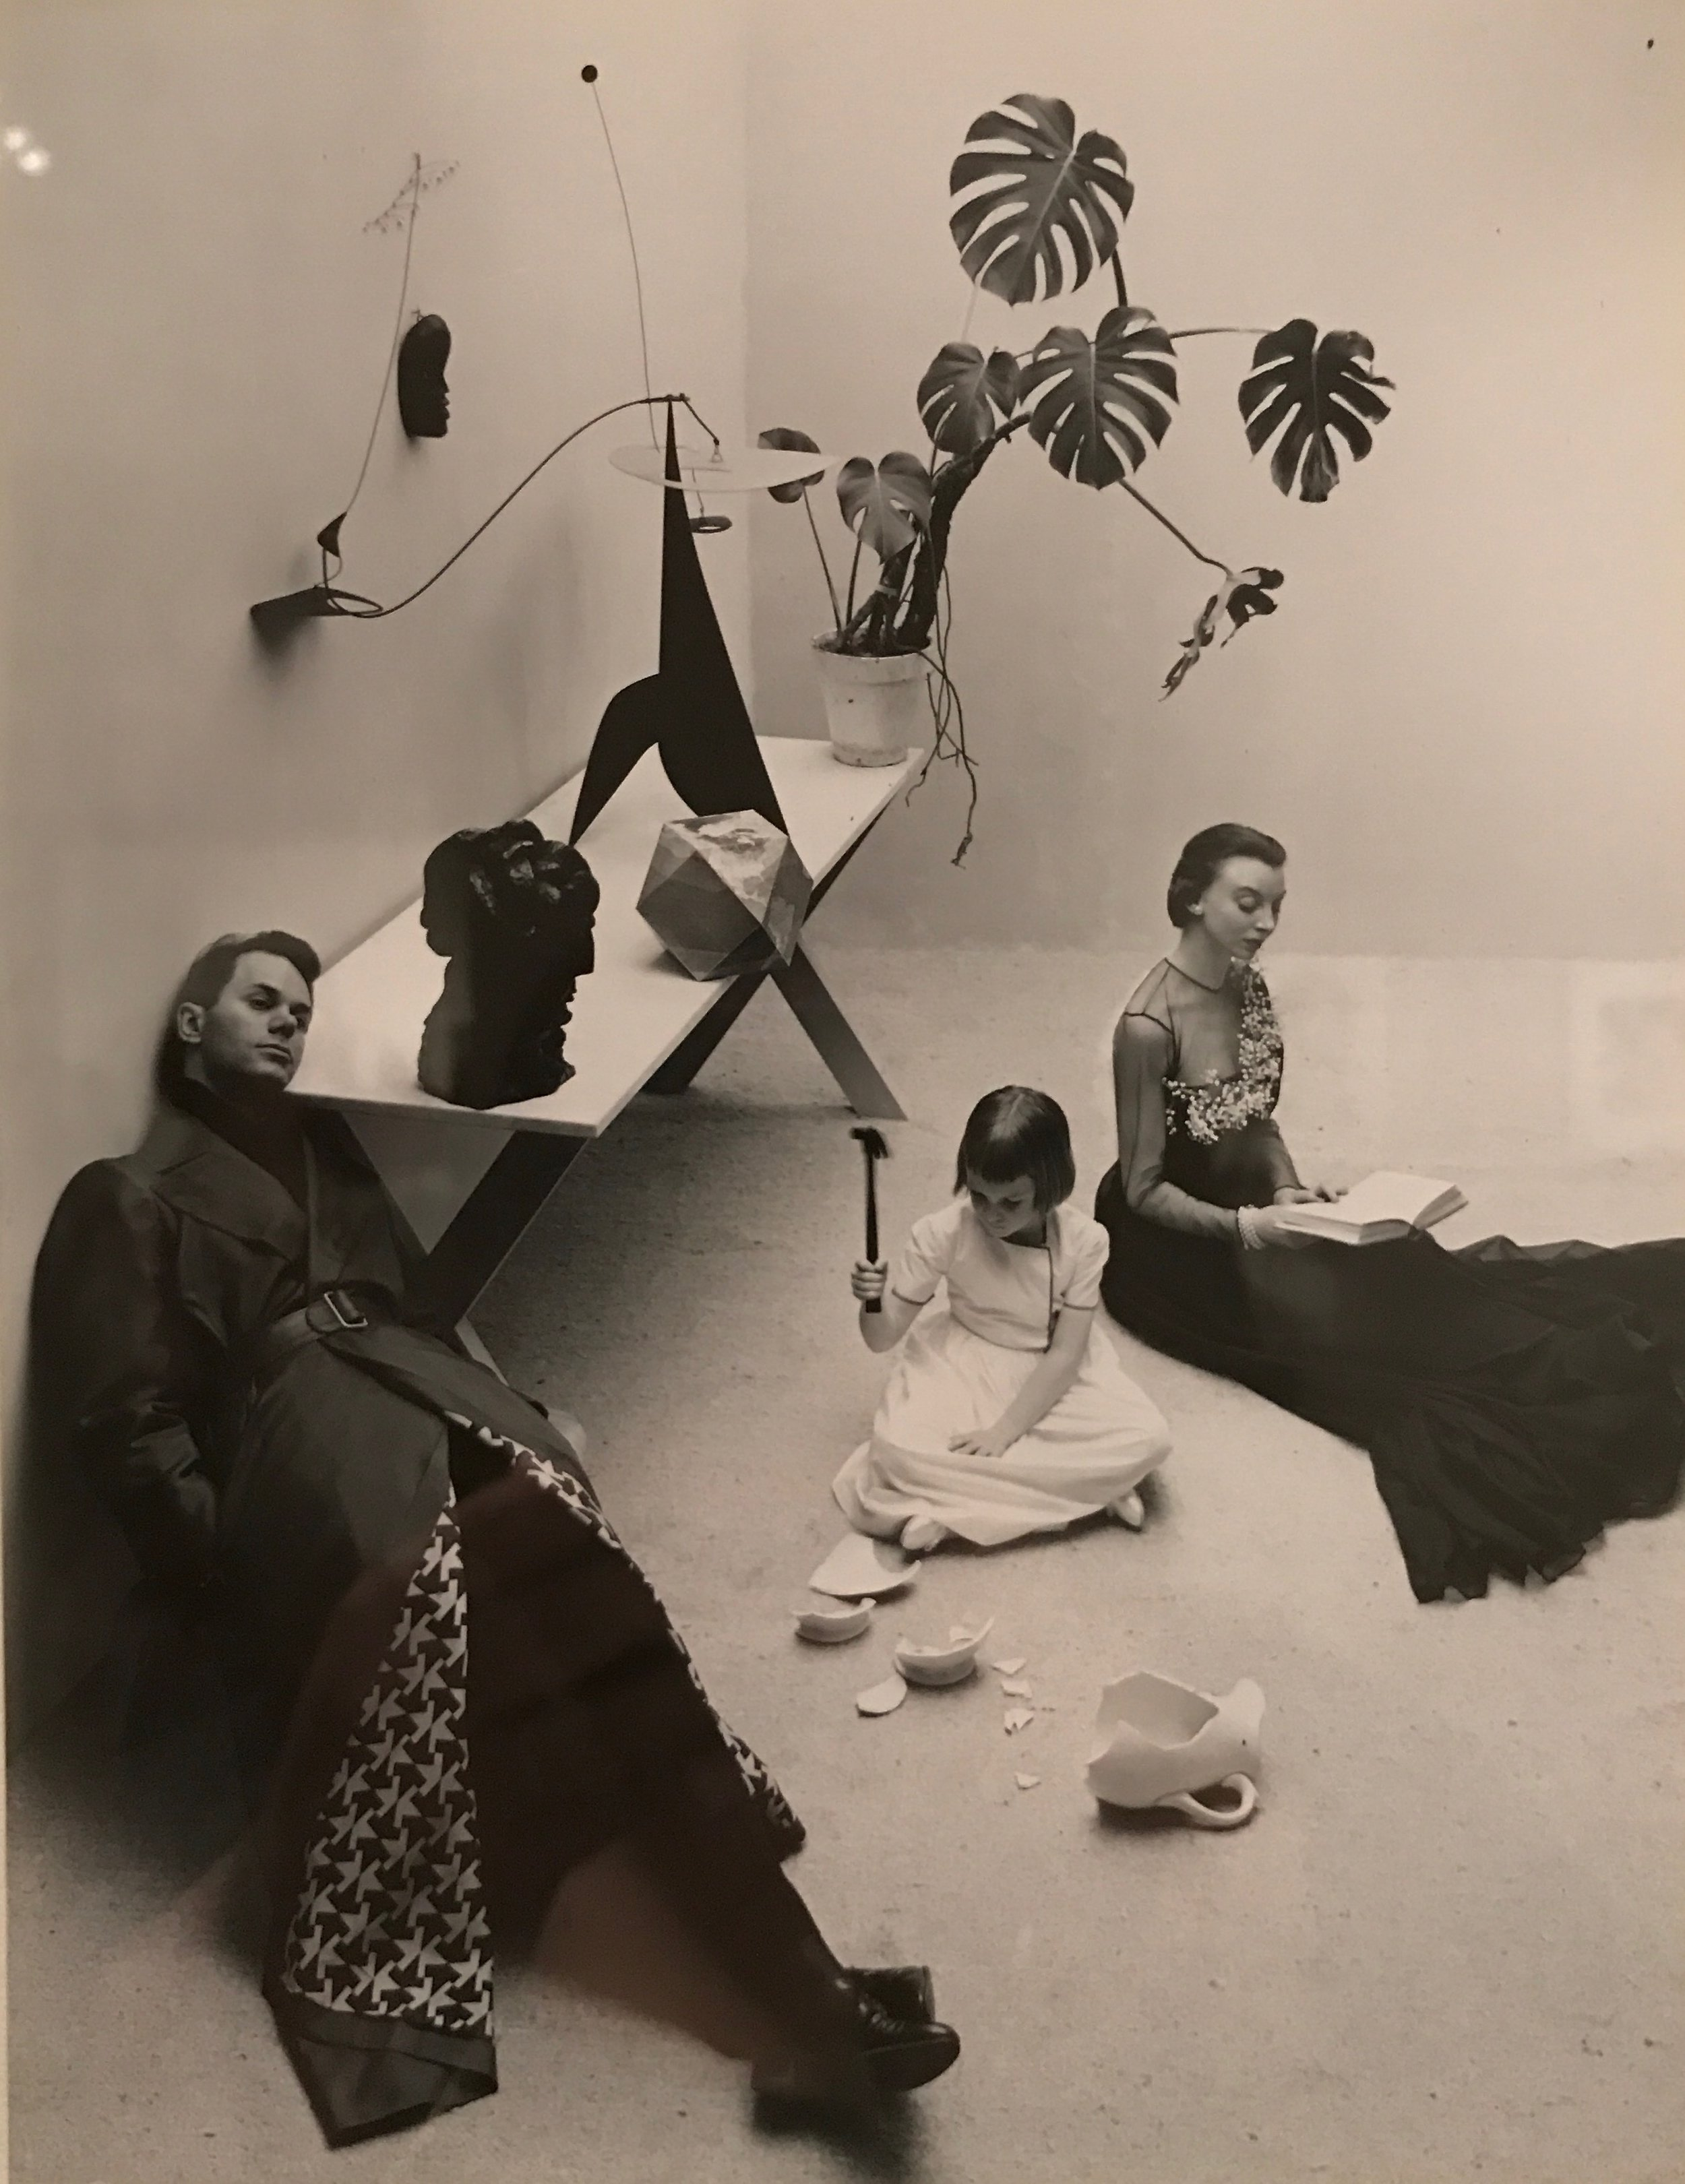 Irving Penn, Modern Family, 1947